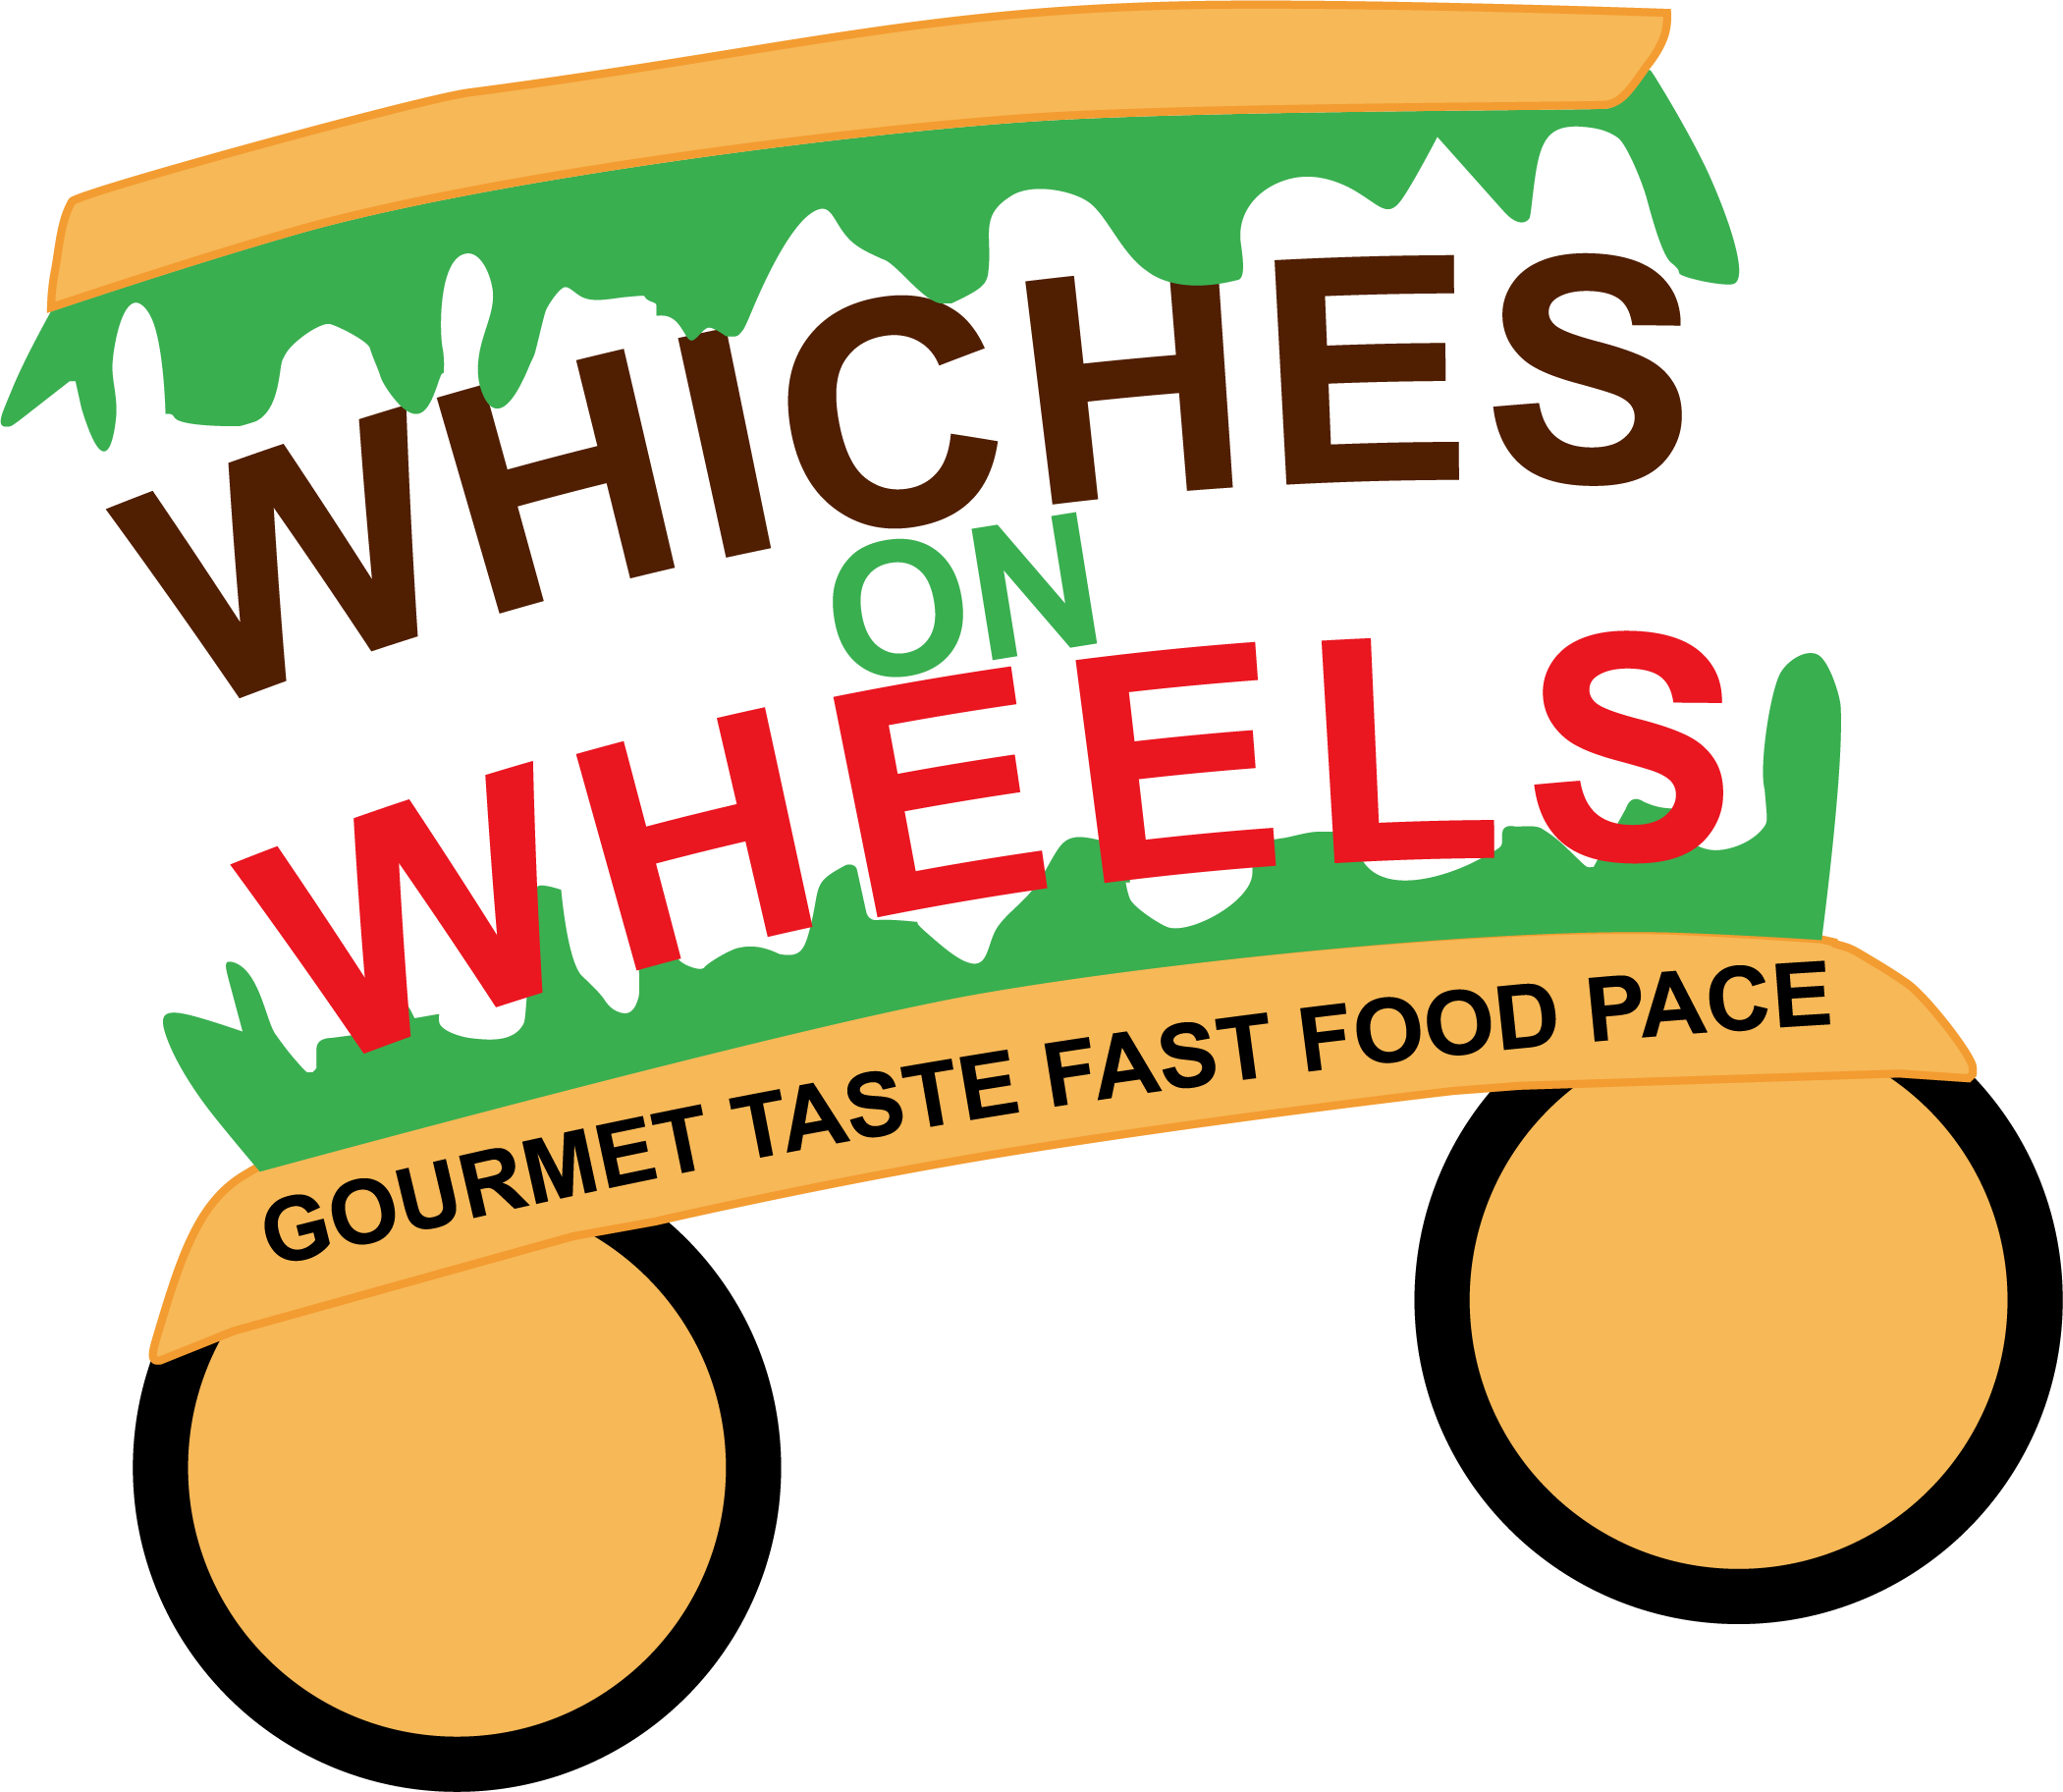 Whiches On Wheels